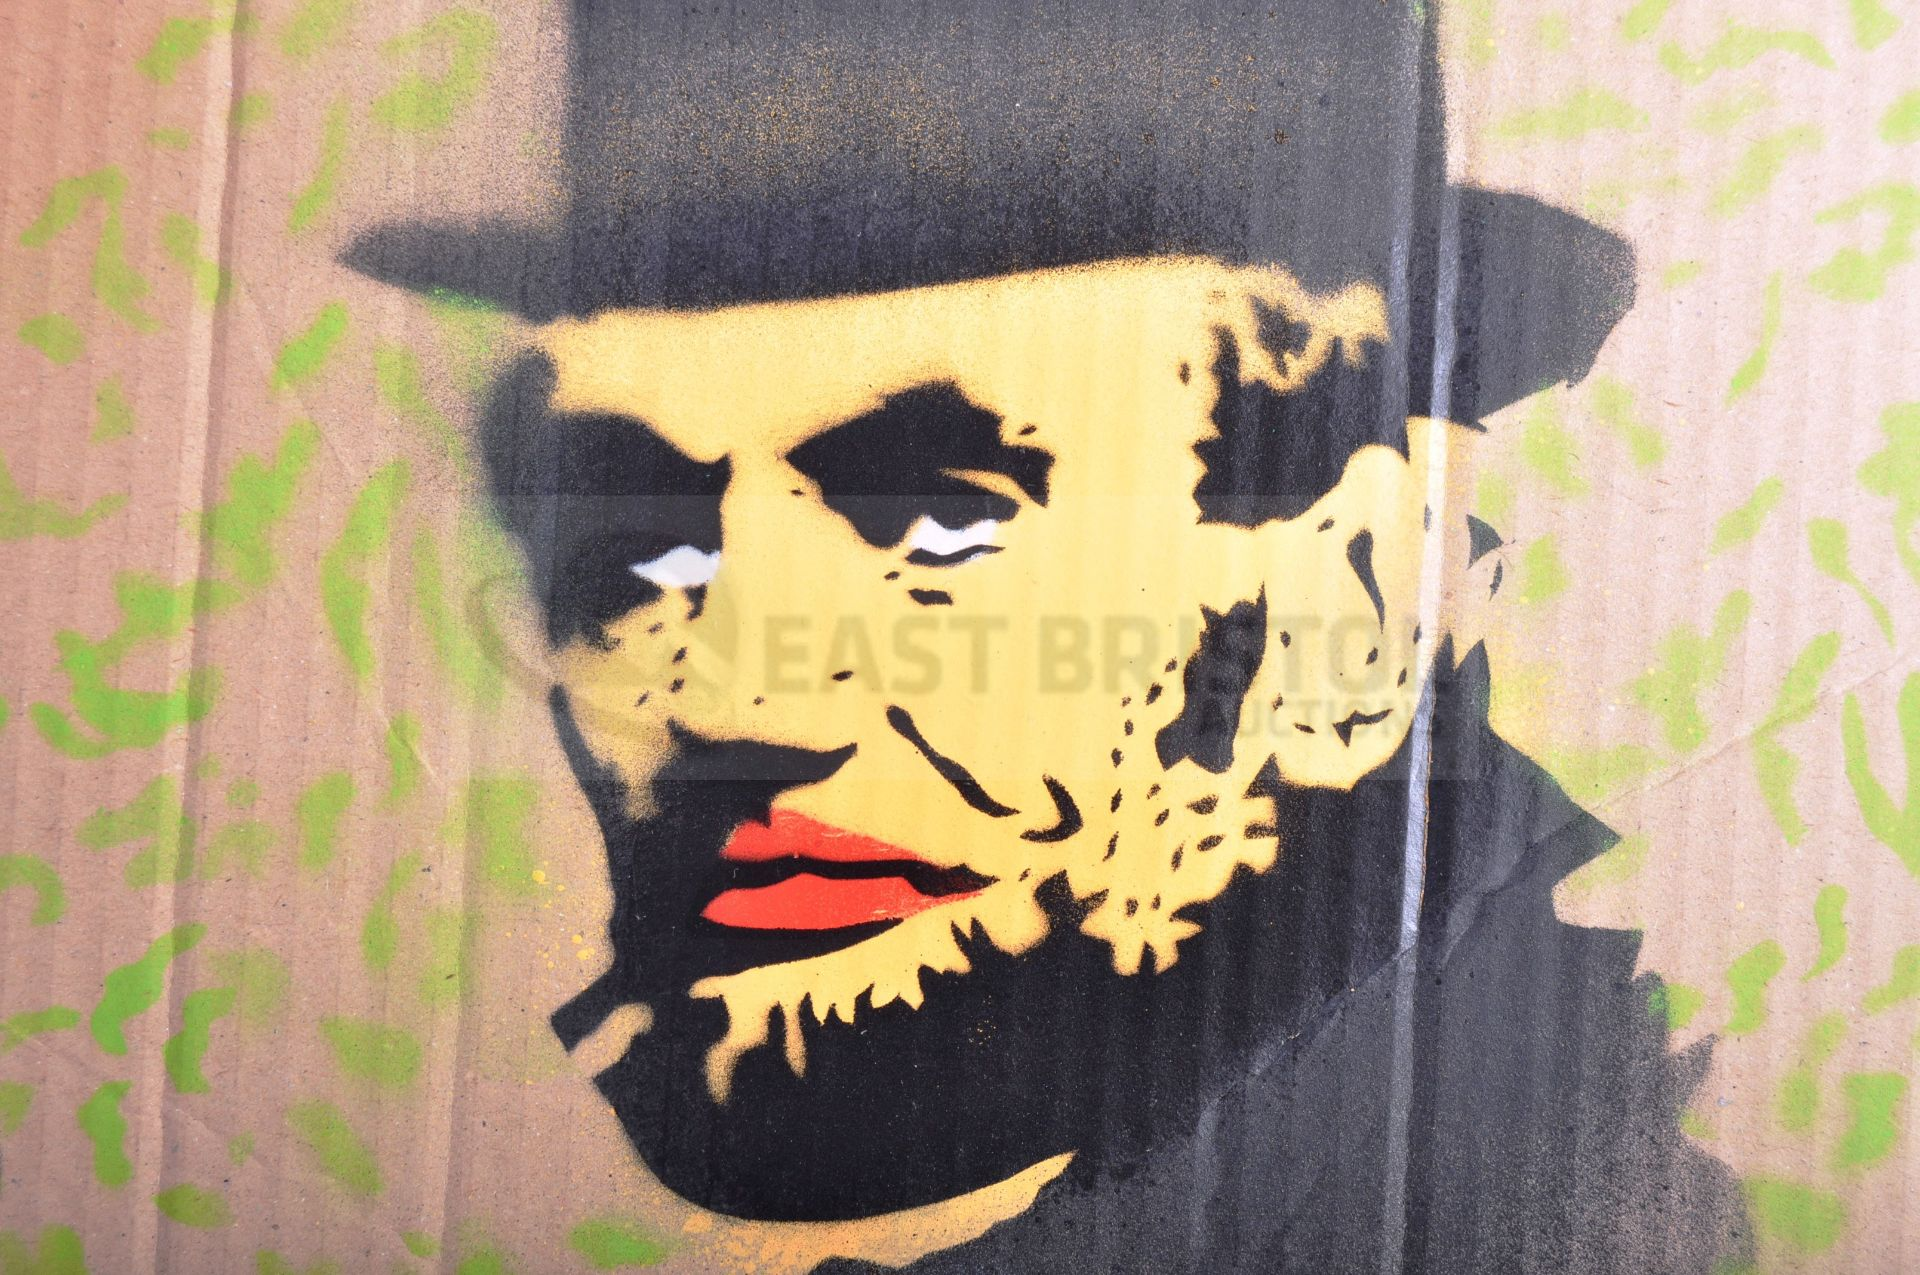 BANKSY - DISMALAND 2015 - ABE LINCOLN - Image 2 of 4